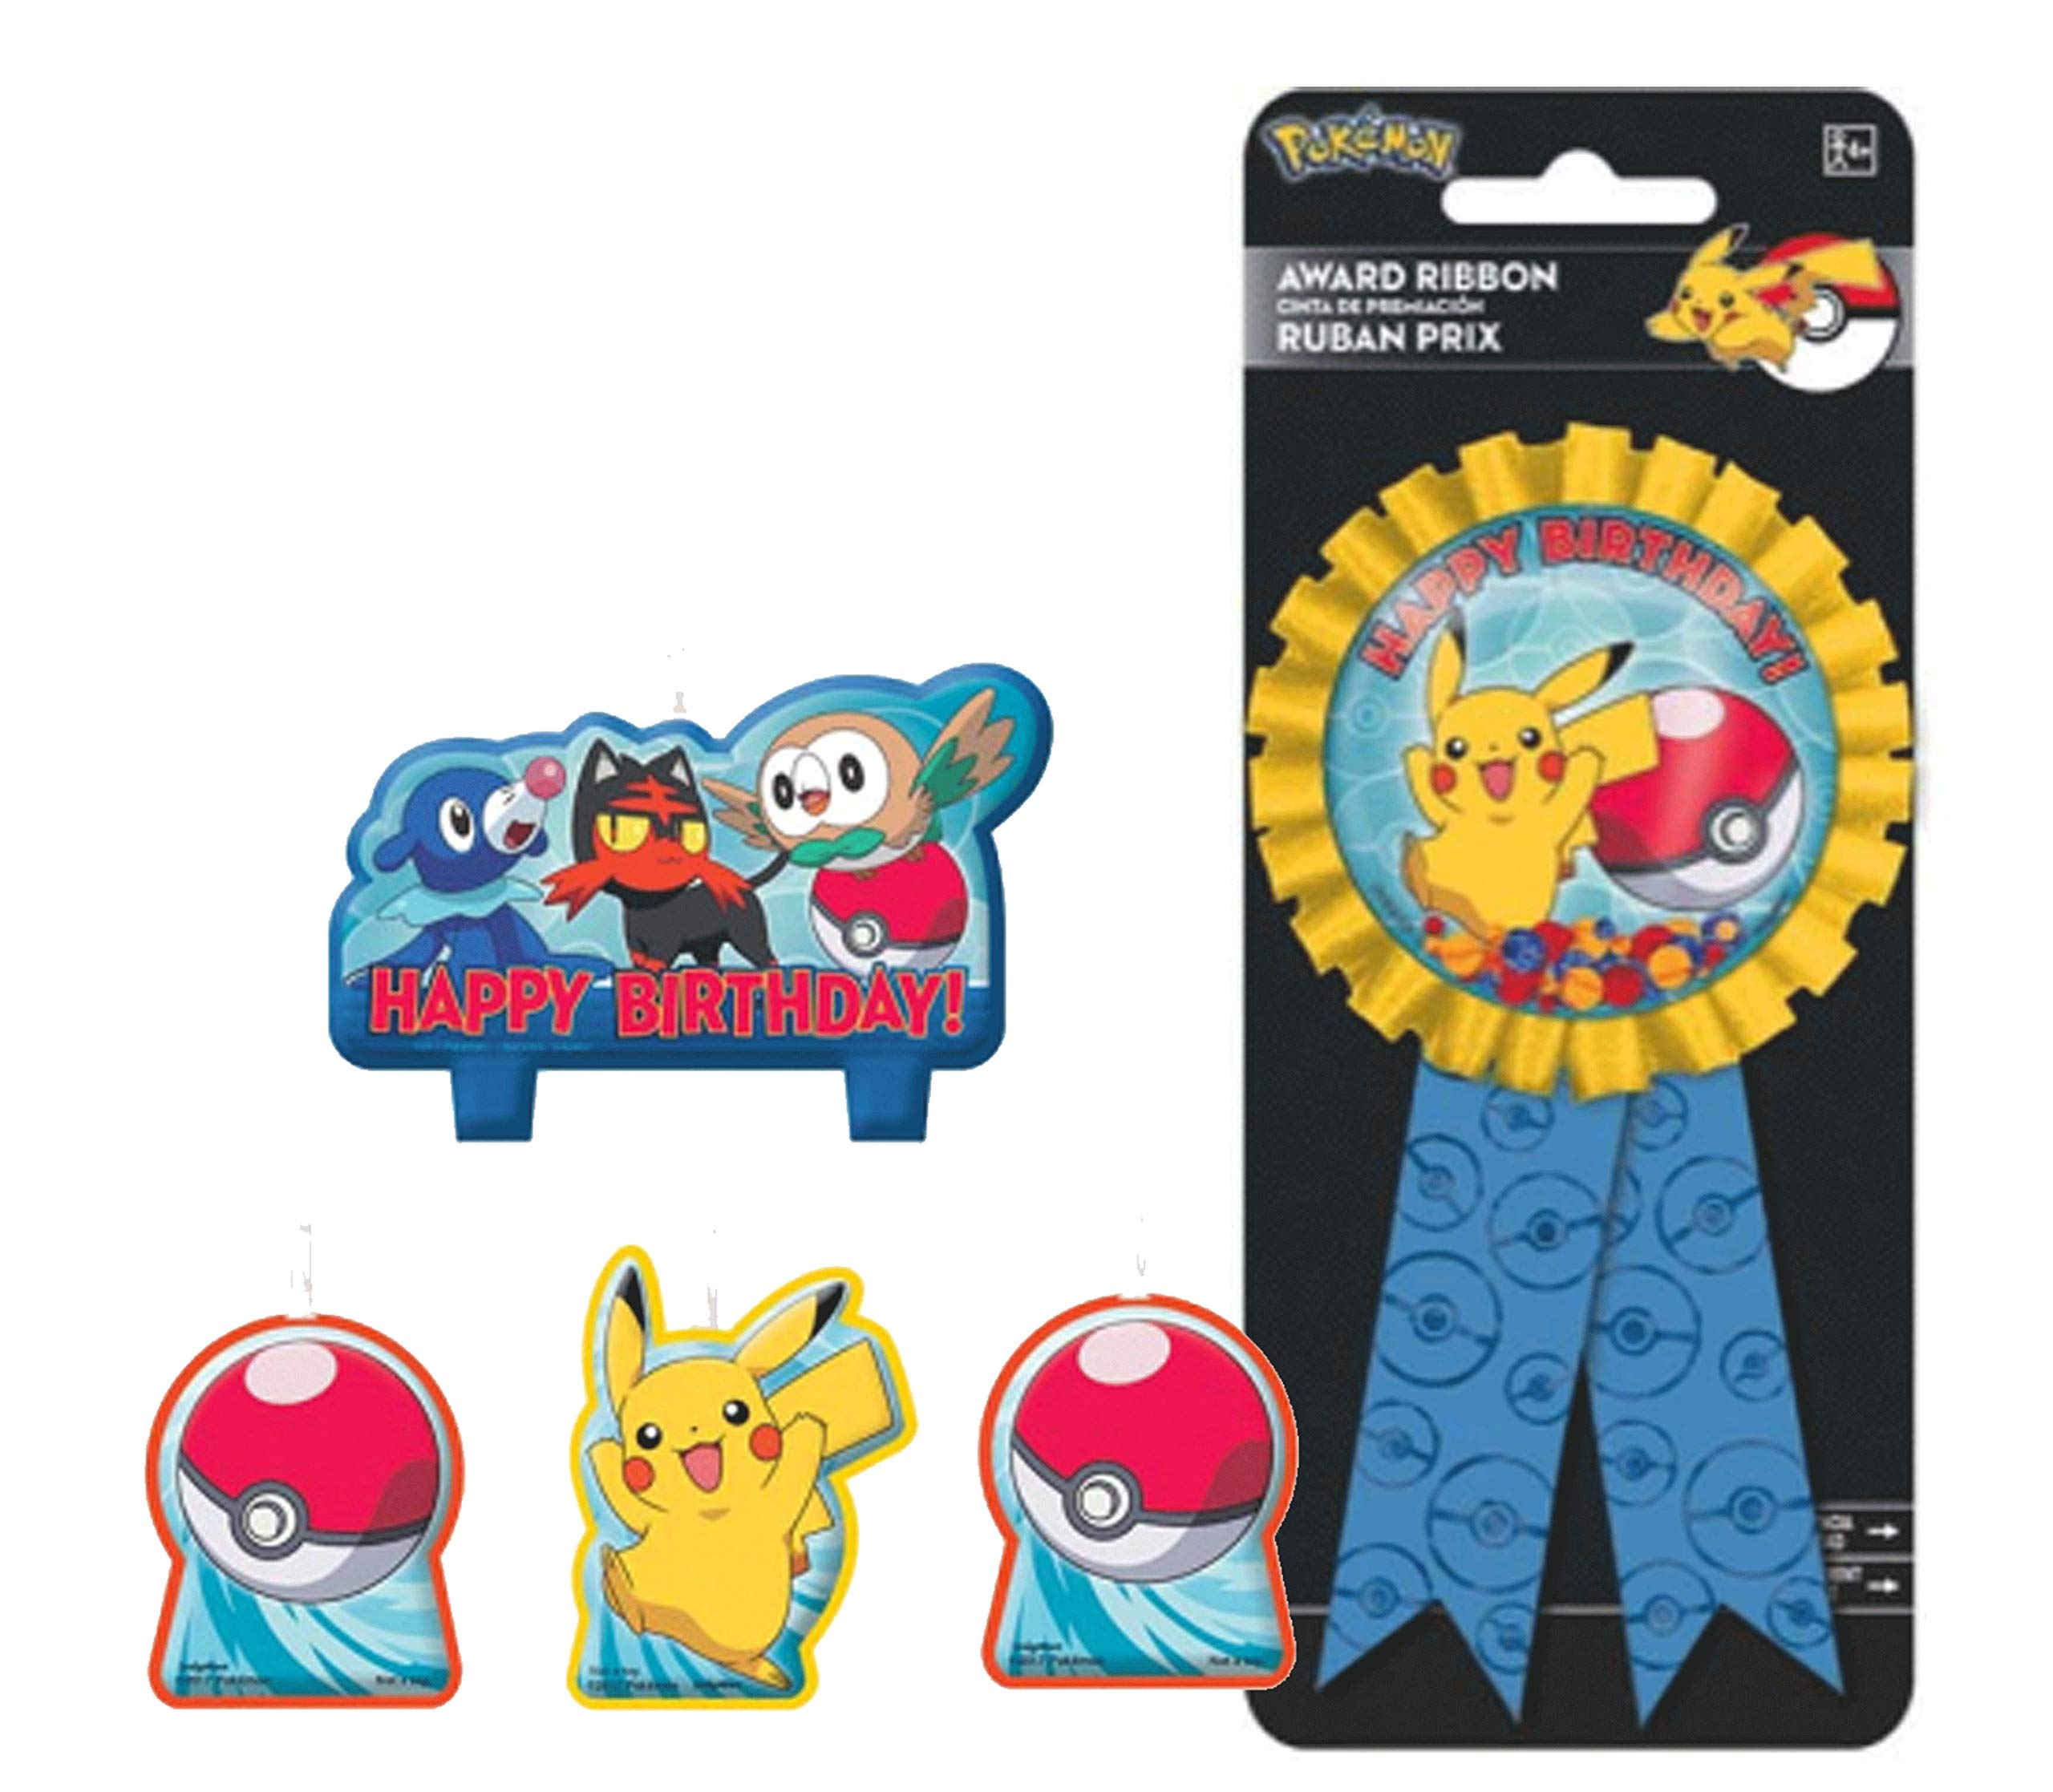 Pikachu Birthday Candles & Confetti Pouch Birthday Ribbon for Guest of Honor!